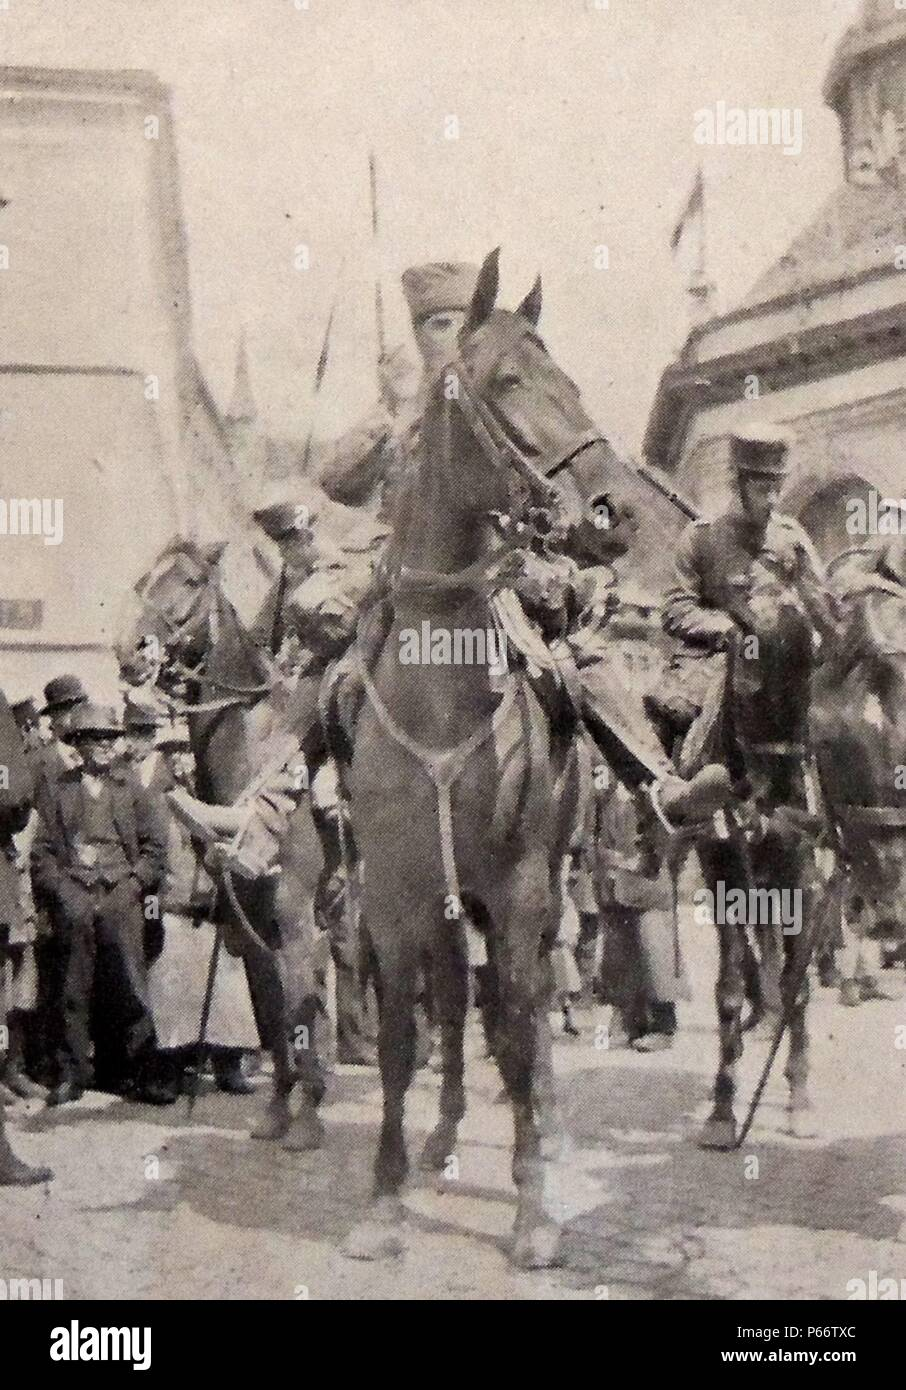 World war One; The advance forces of German cavalry enter the Belgian town of Spa, 4th August 1914 - Stock Image